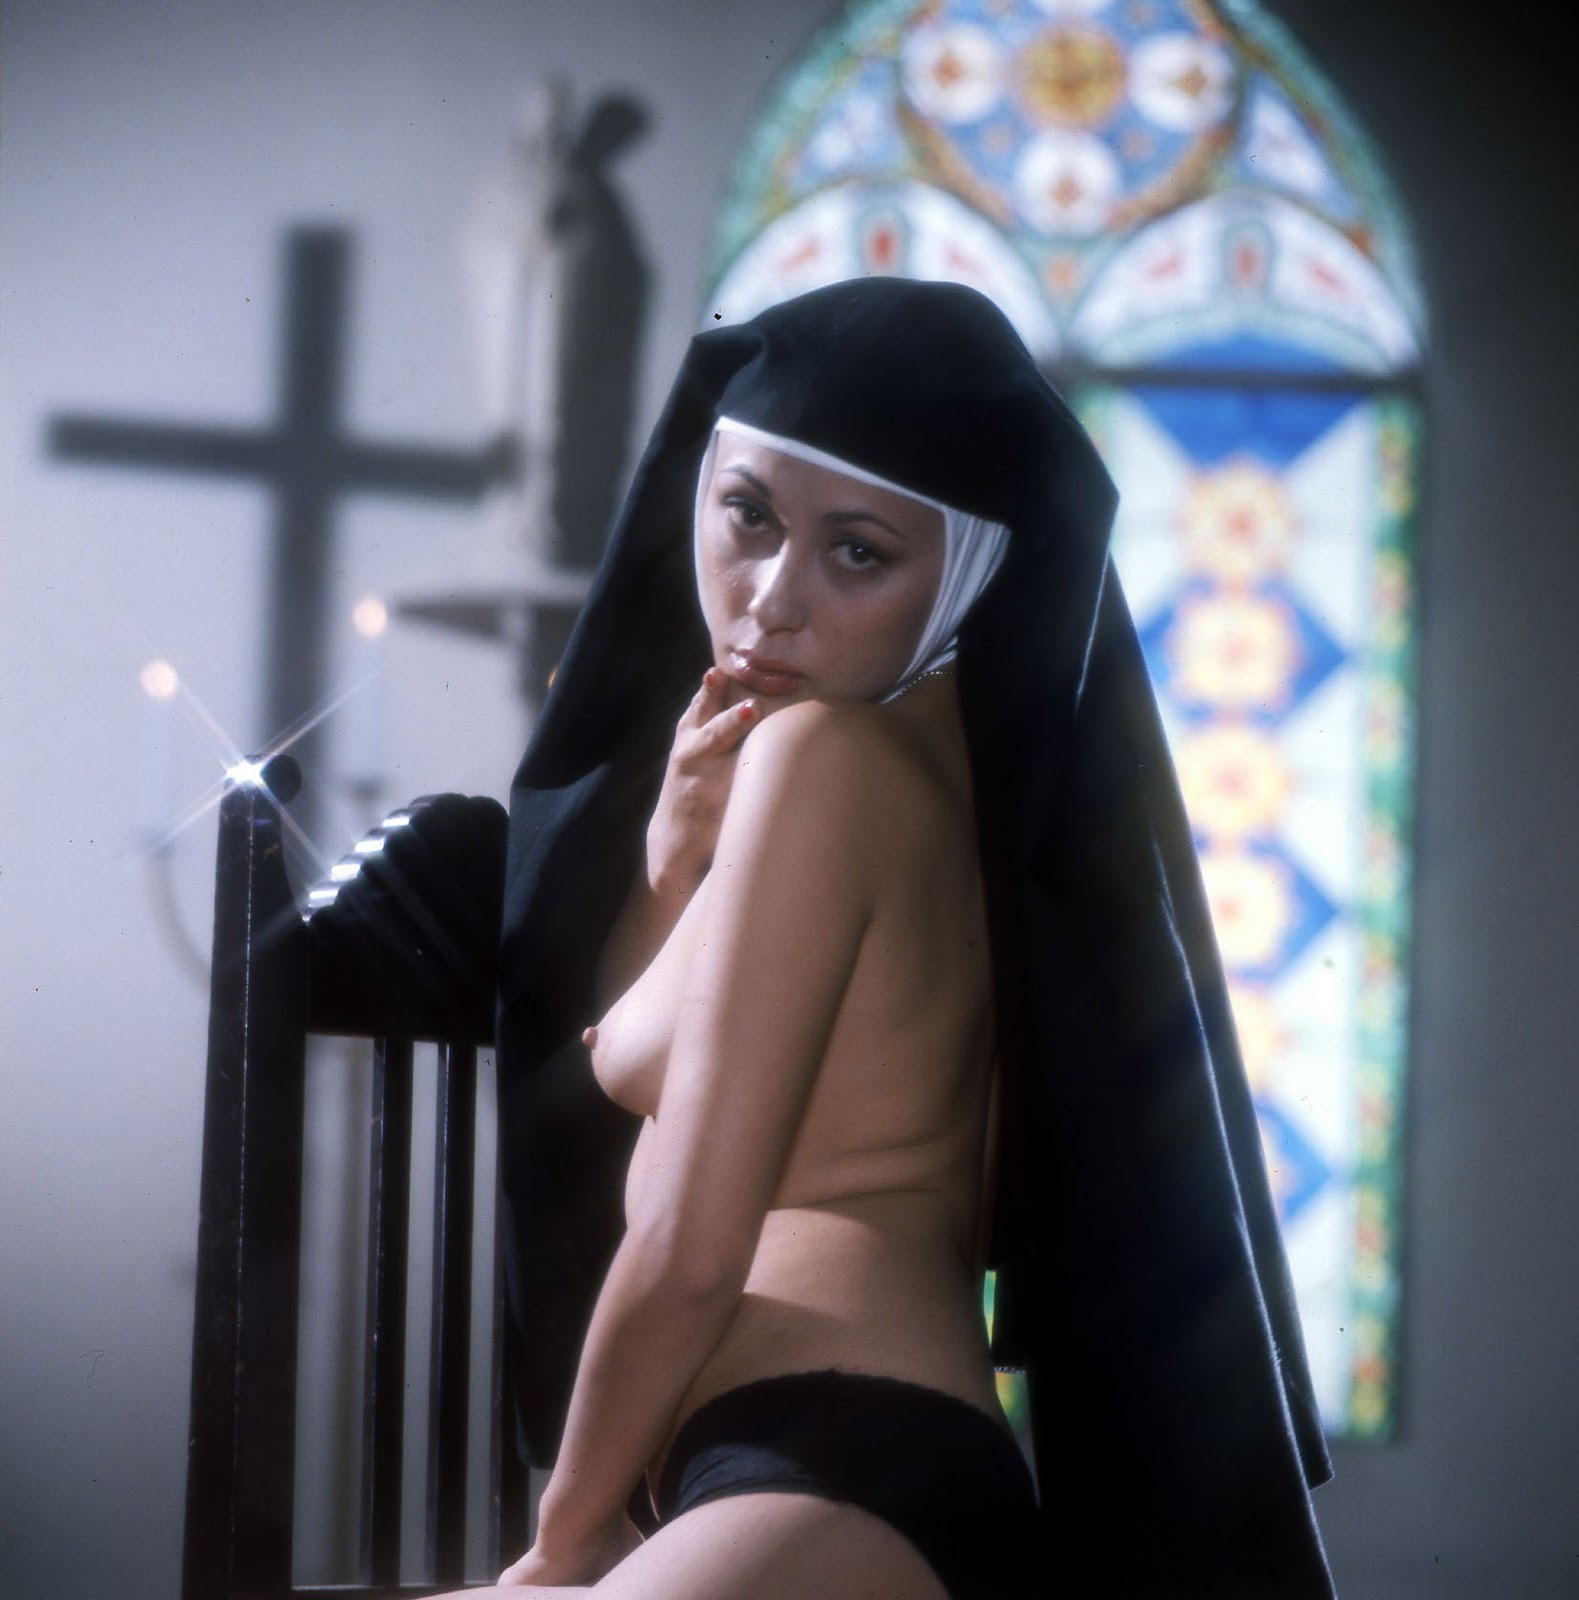 hot nuns sex image